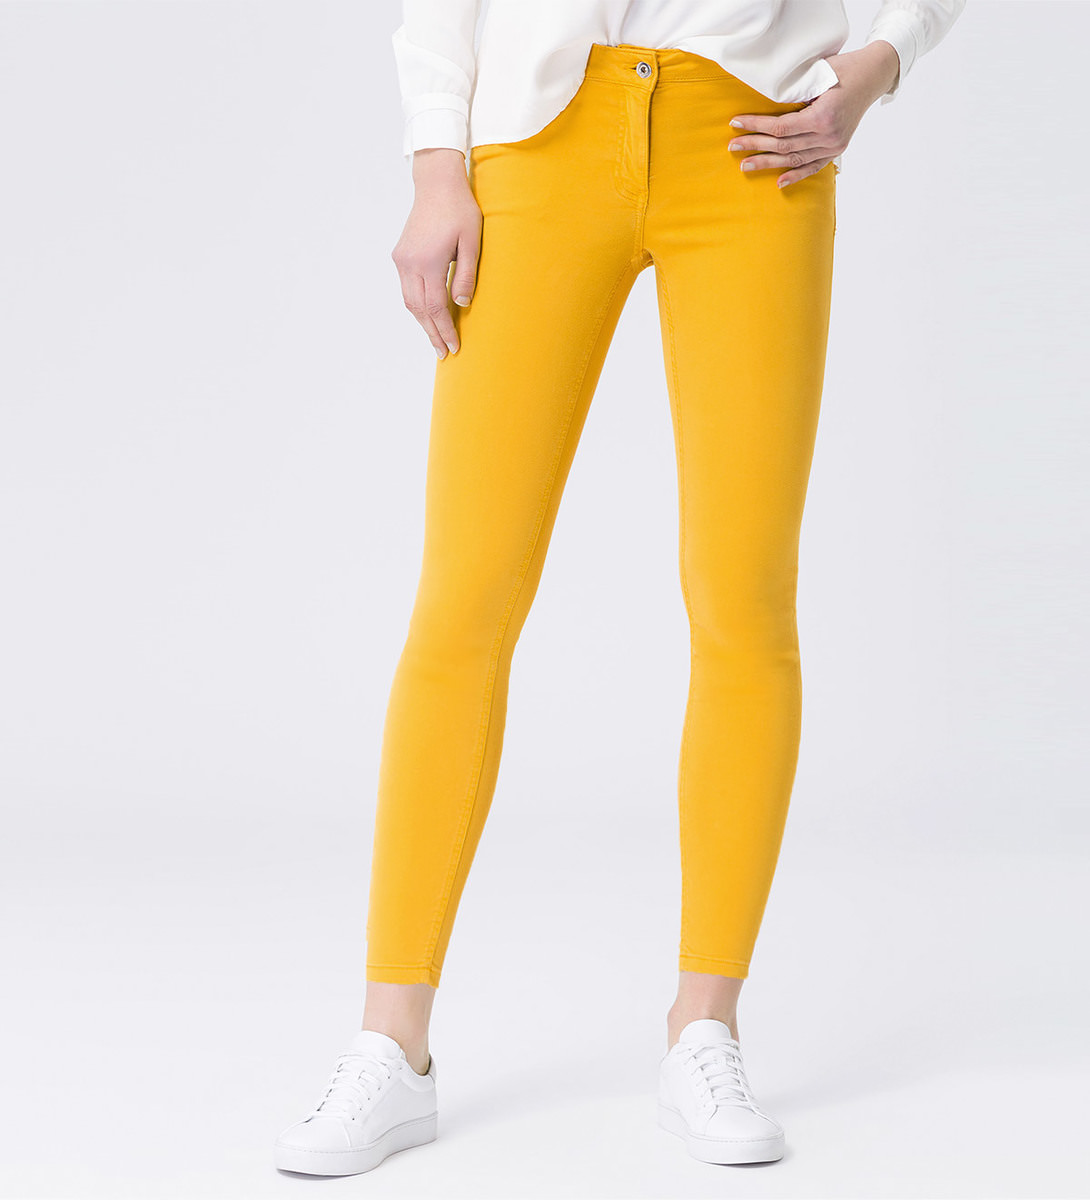 Jeans im 5-Pocket-Style 28 Inch in safran yellow